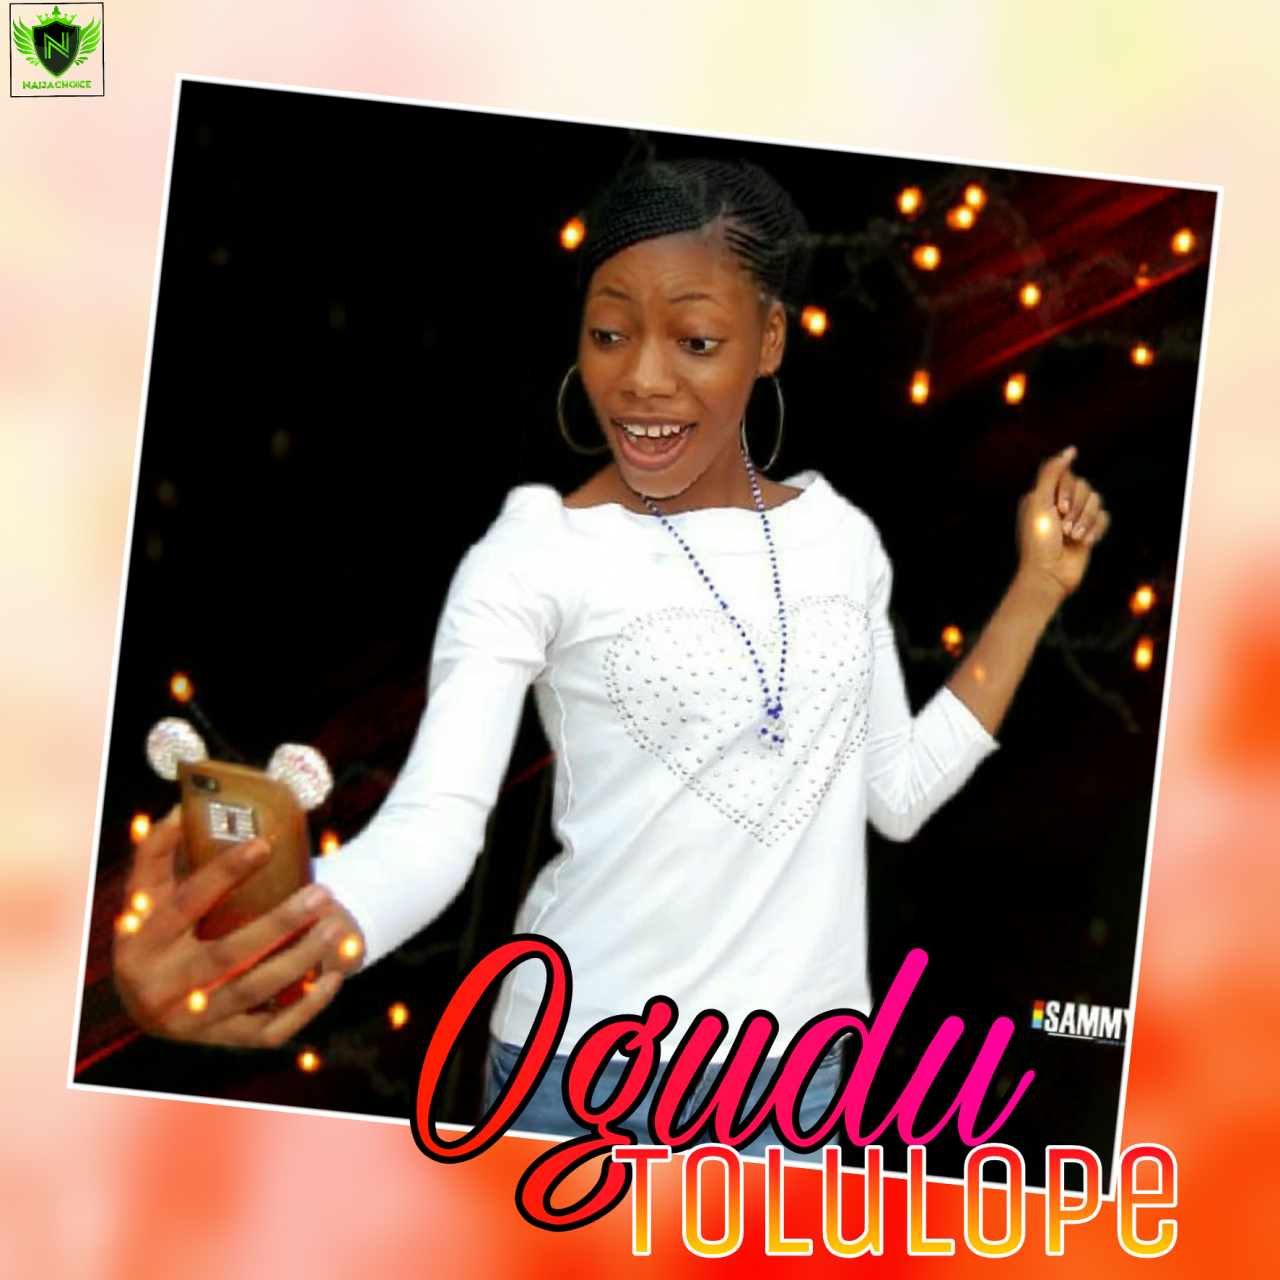 FACE OF THE WEEK: Ogudu Tolulope Temilade [WK4] #NcFow #Naijachoicefow